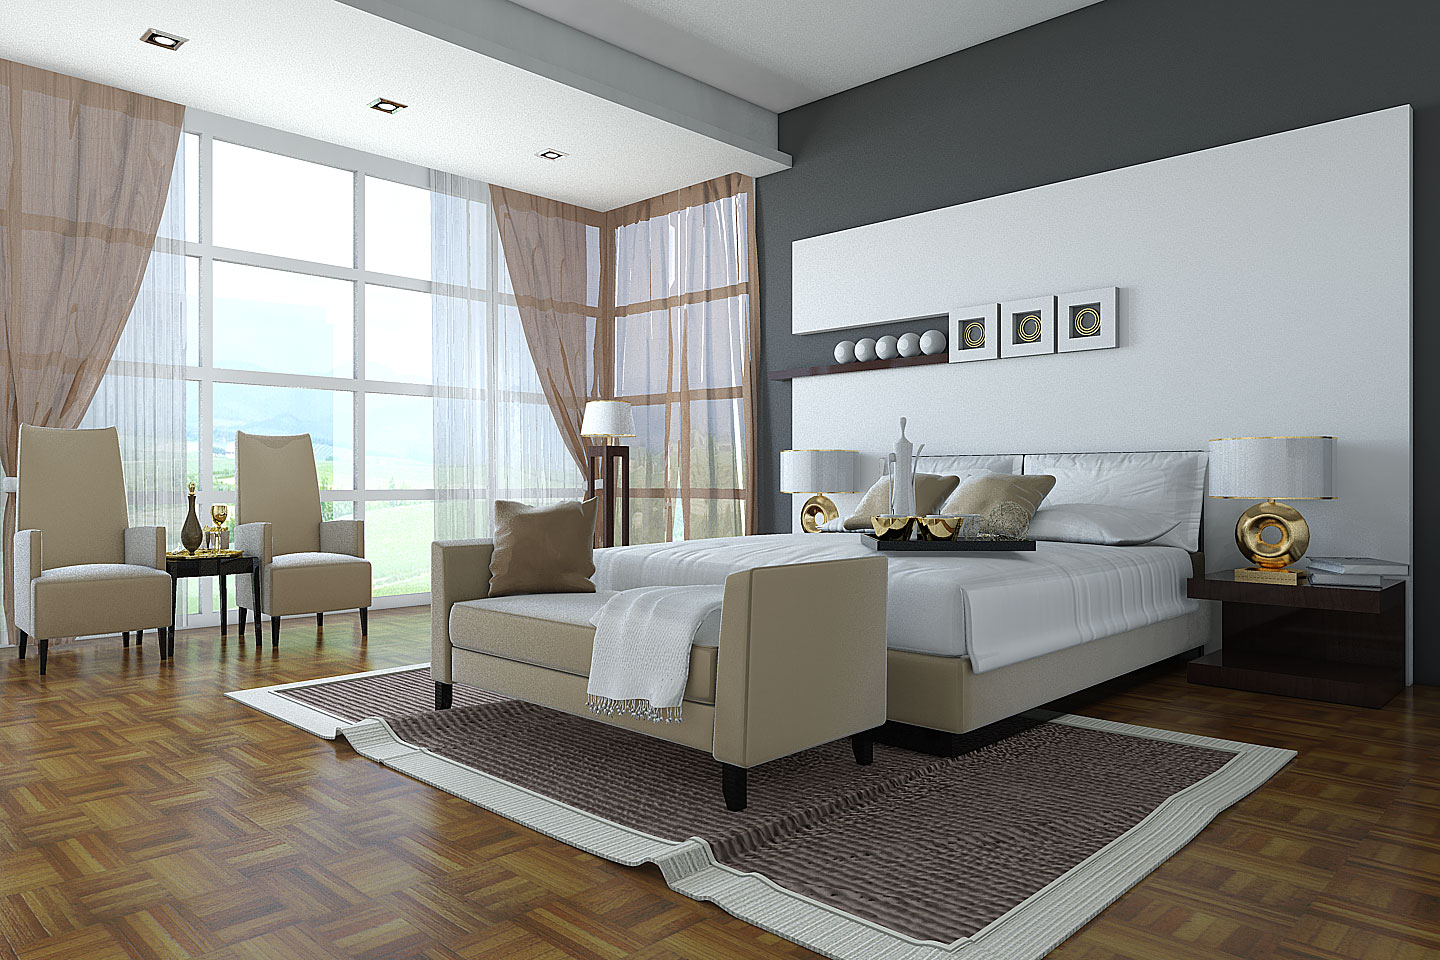 Redesigning The Bedroom With A Personal Theme